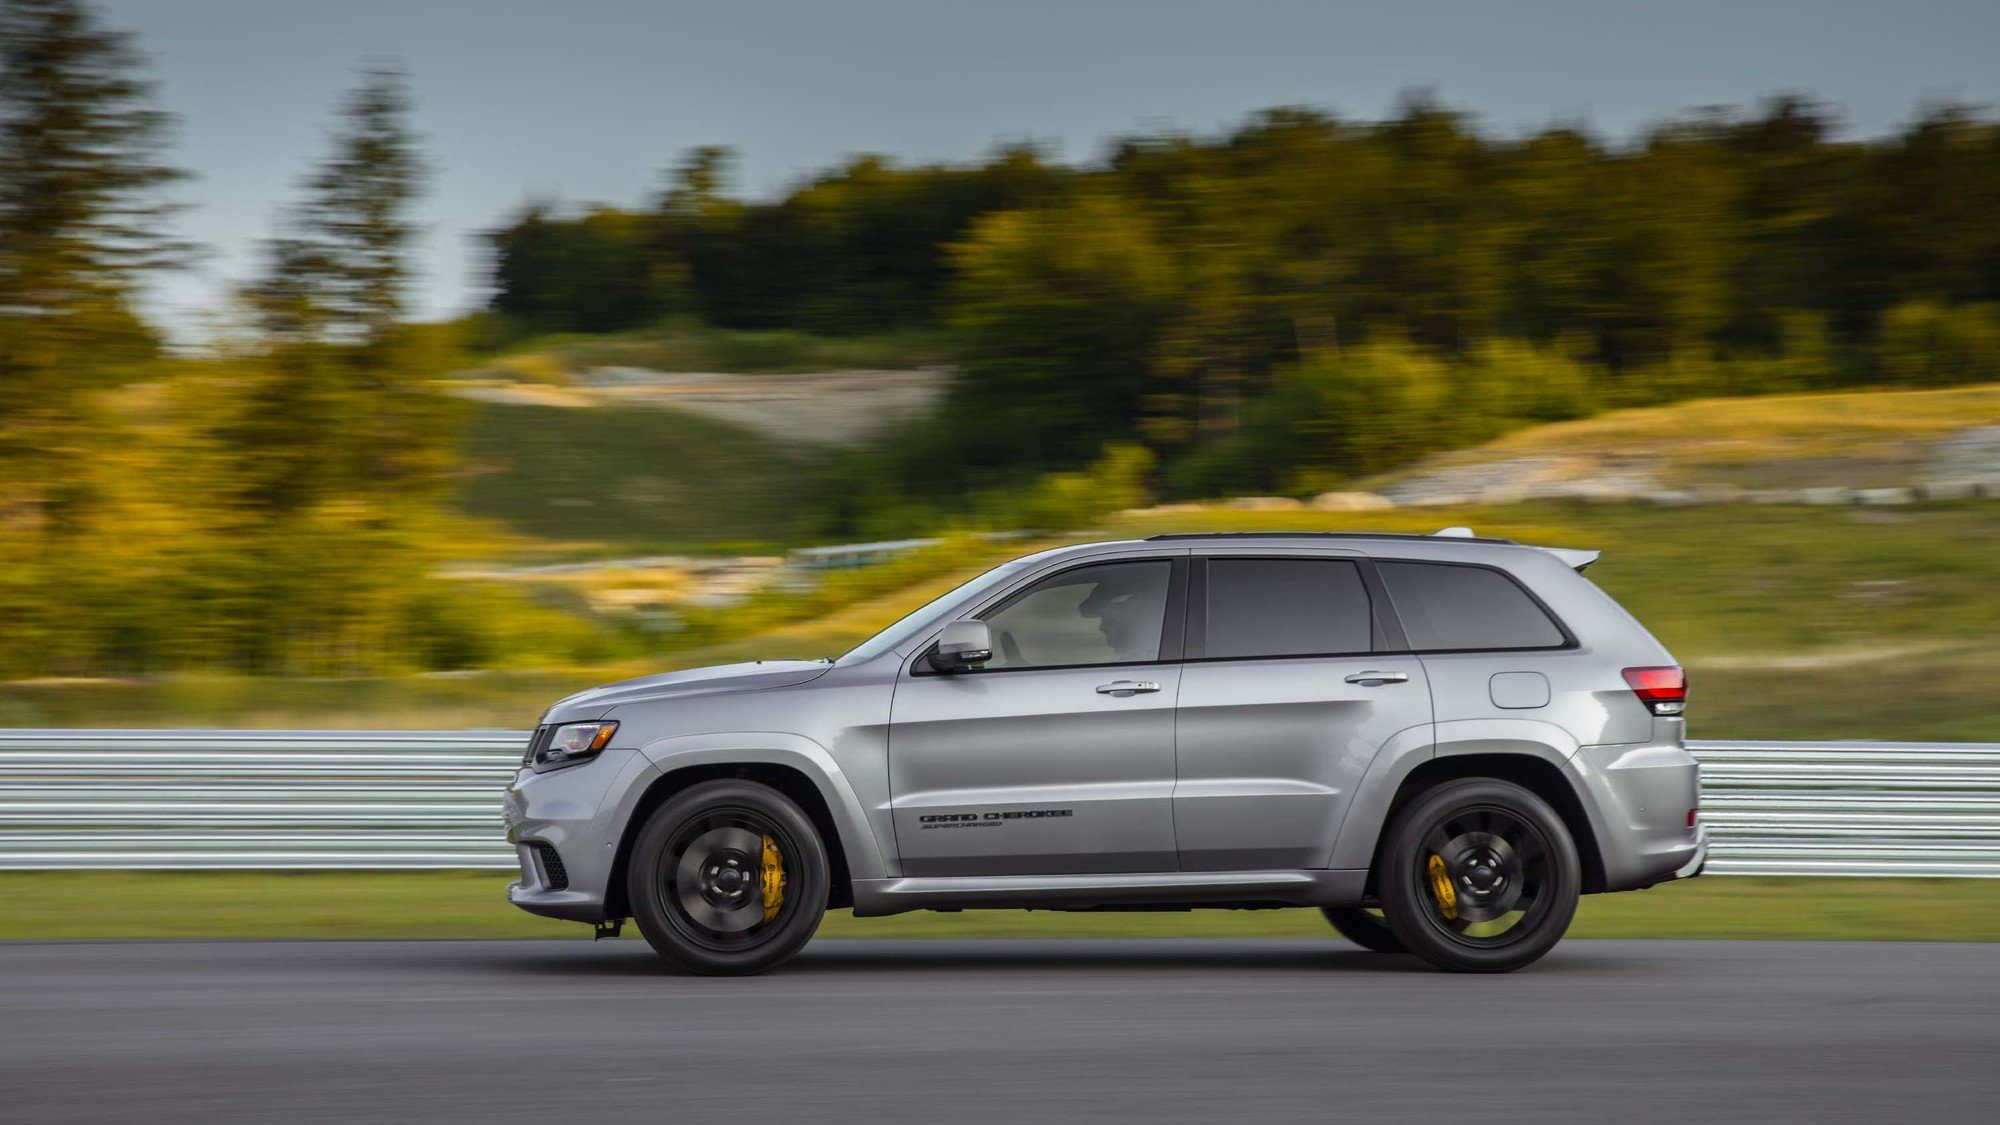 2020 jeep grande cherokee review and buying guide - car